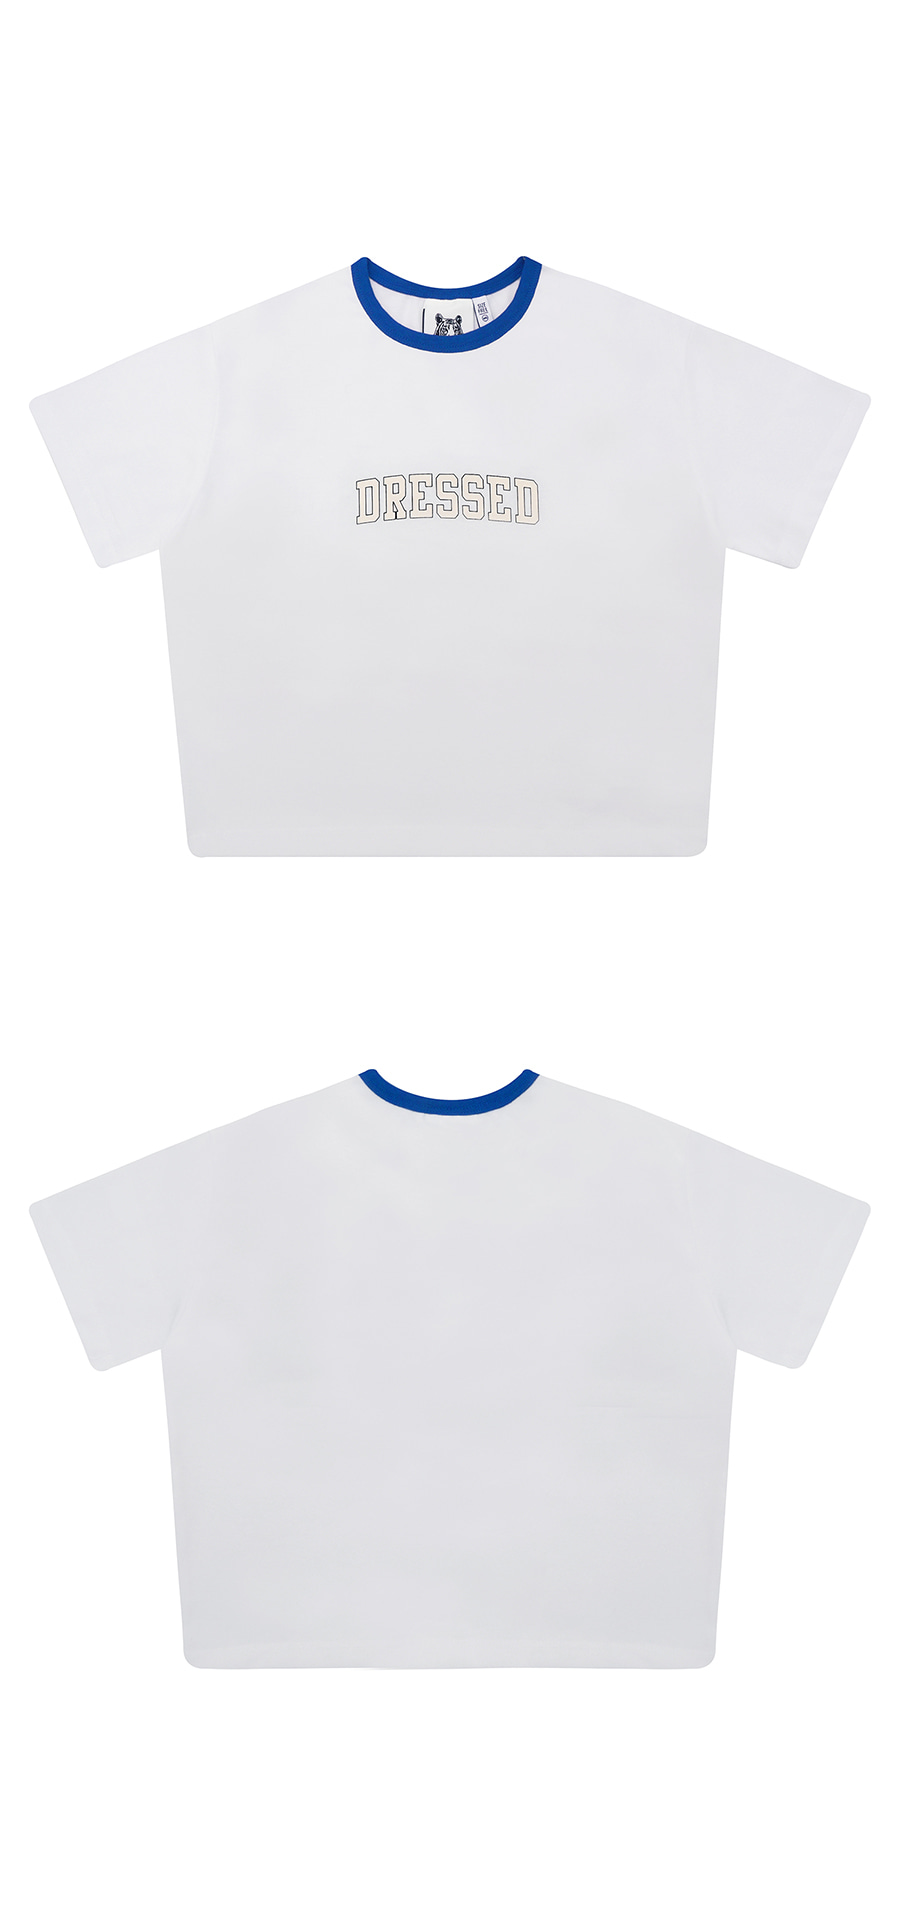 매치글로브(MATCHGLOBE) MG9S DRESSED CROP TEE (BLUE)